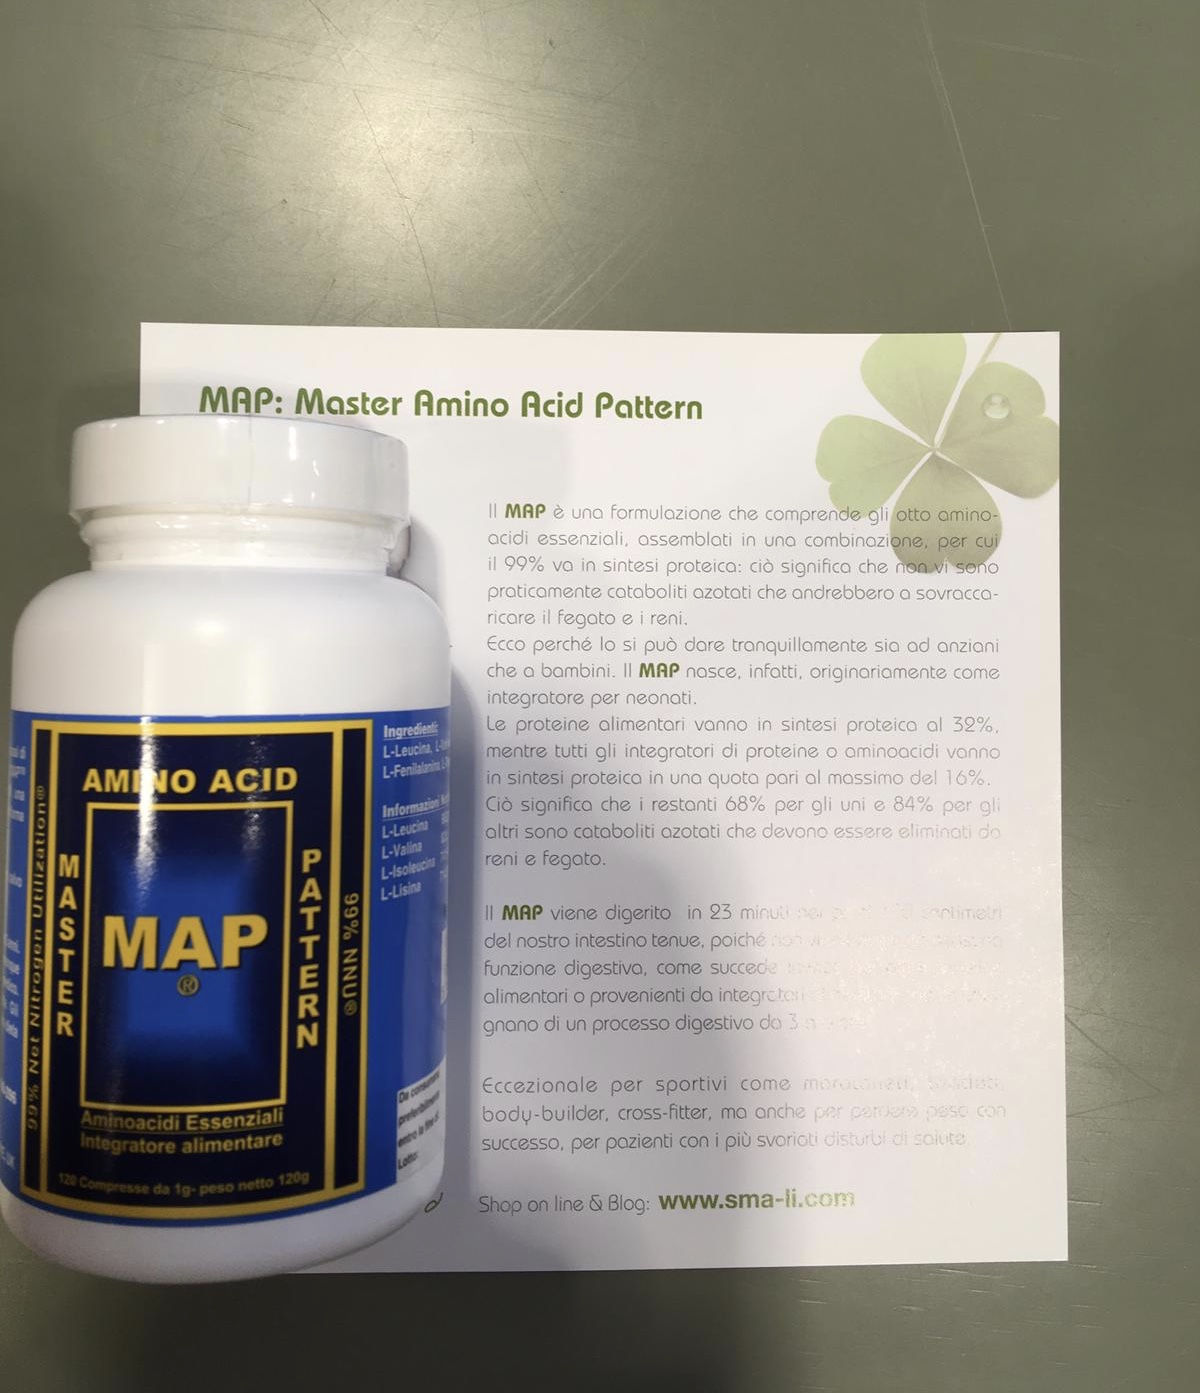 MAP – MASTER AMINO ACID PATTERN